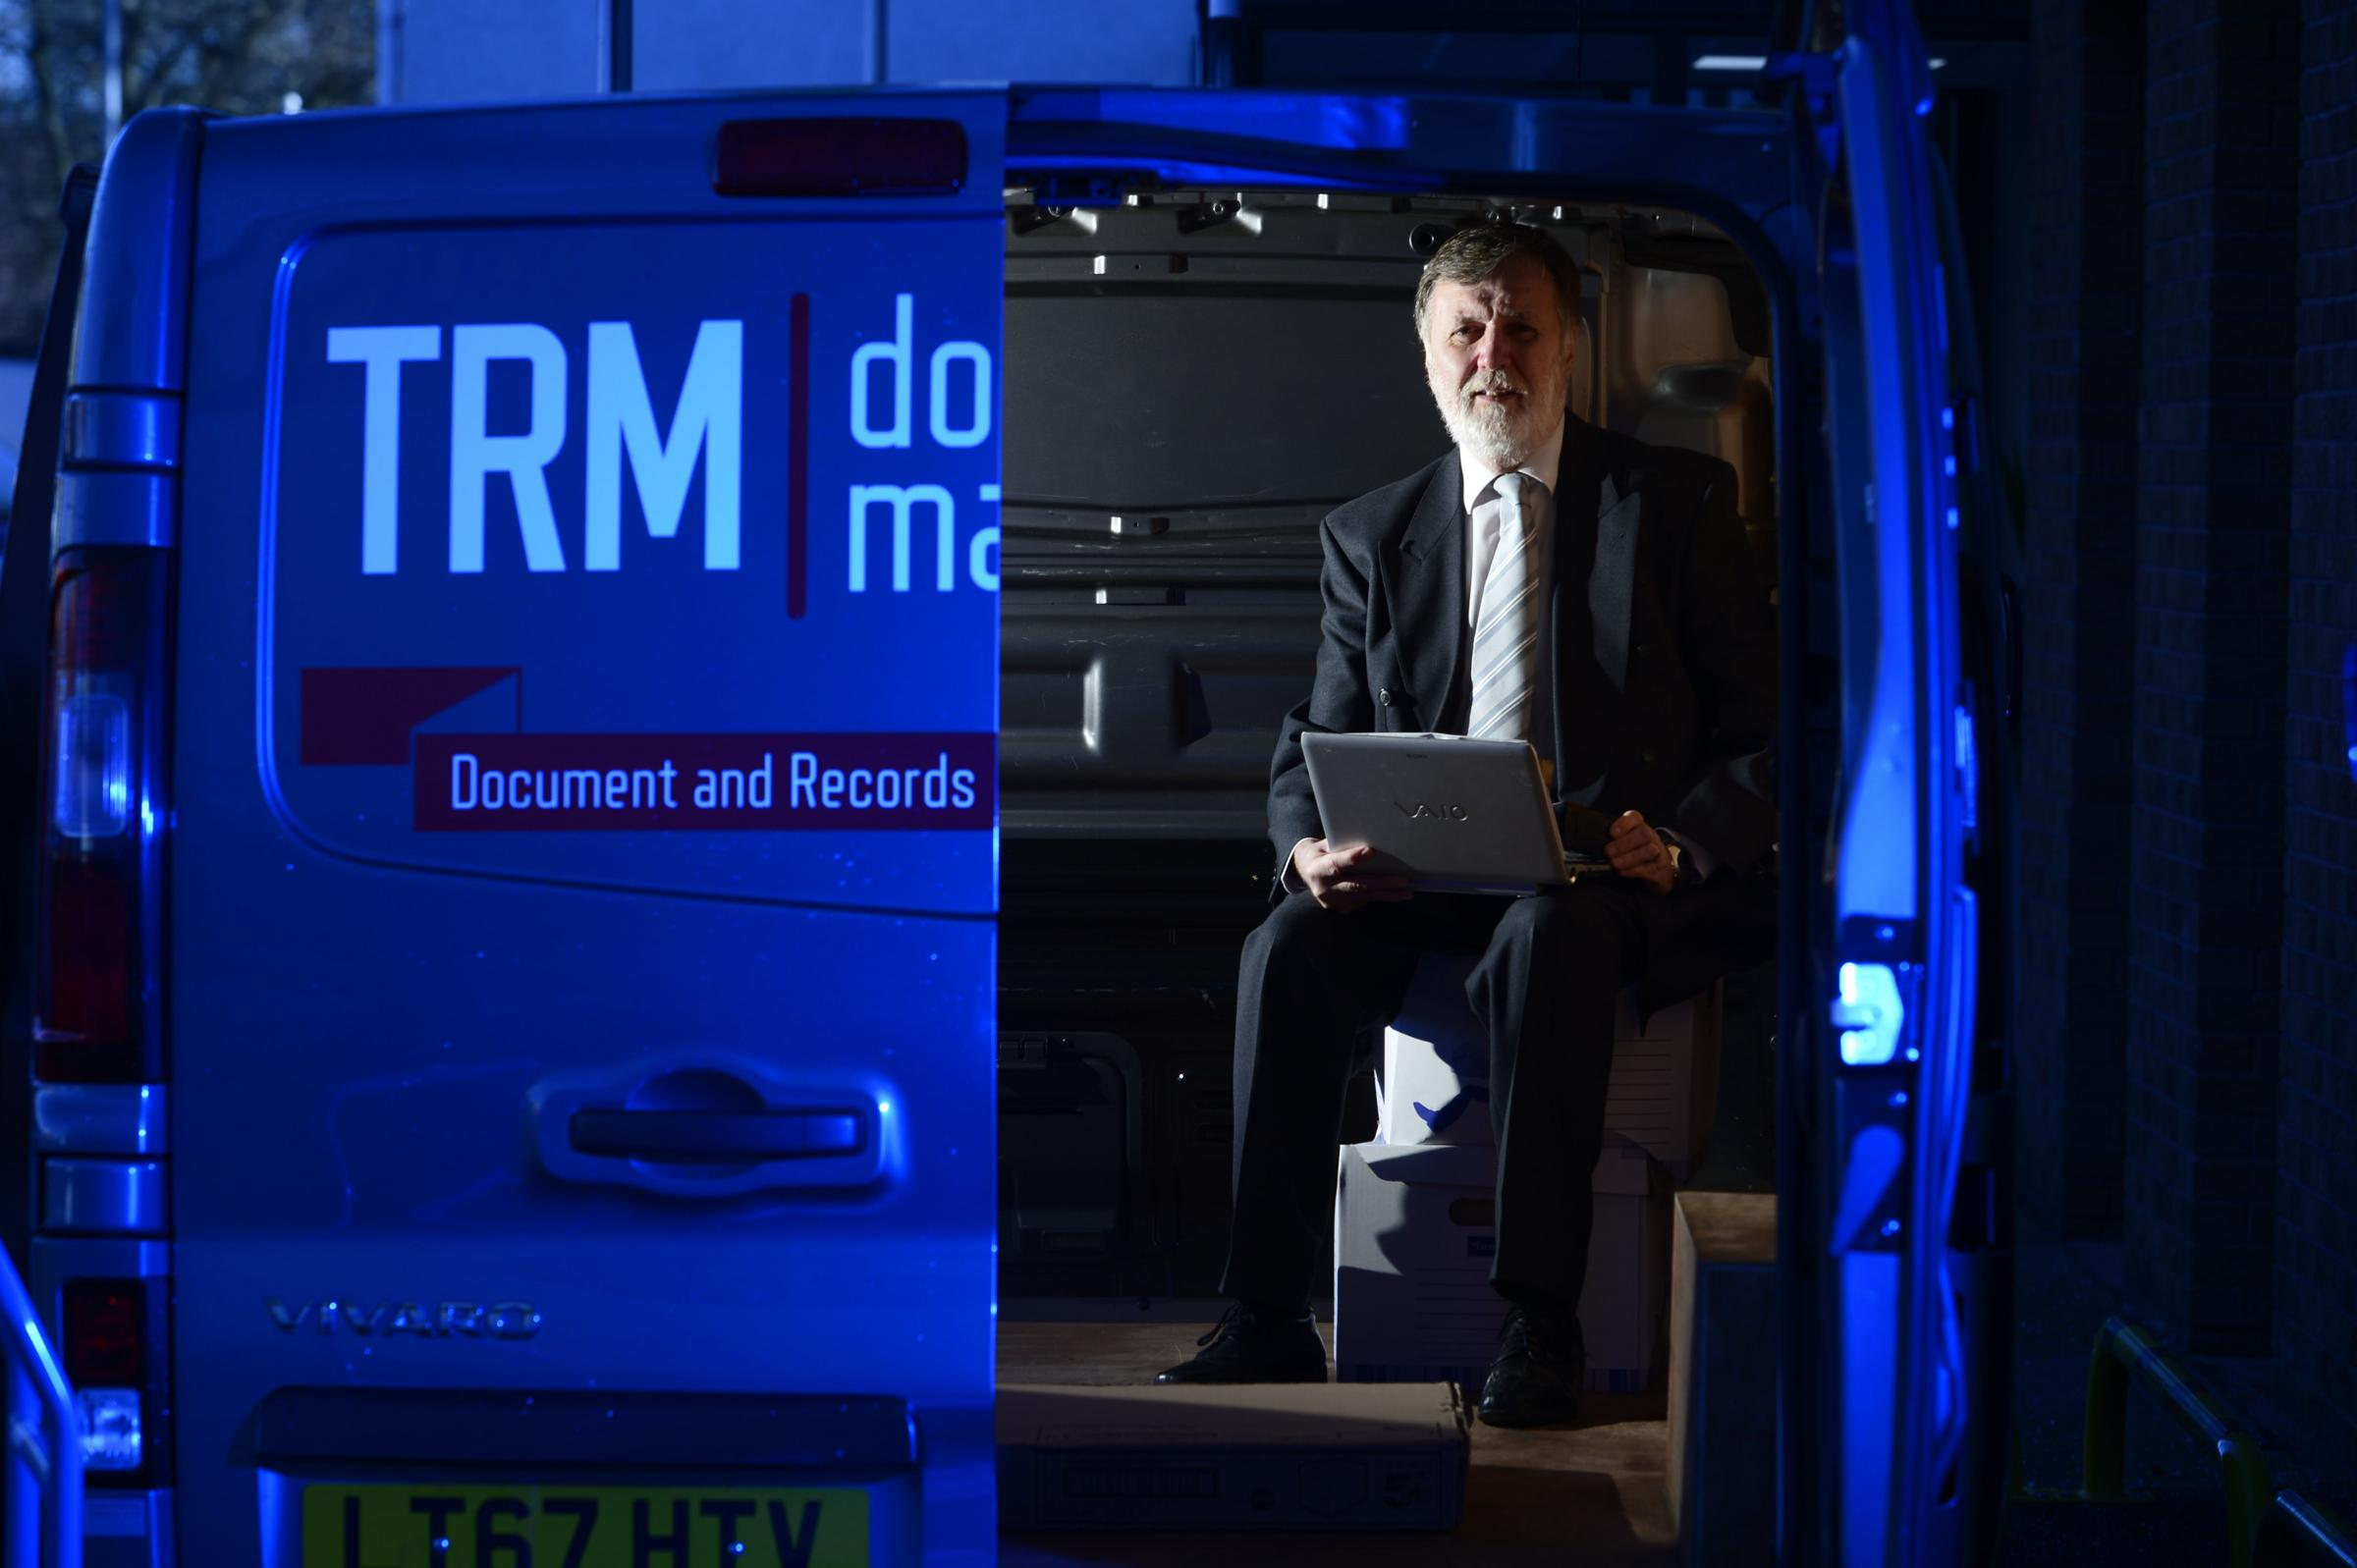 Gordon McPherson of TRM has been in the document management industry for more than 40 years. Photograph: Jamie Simpson